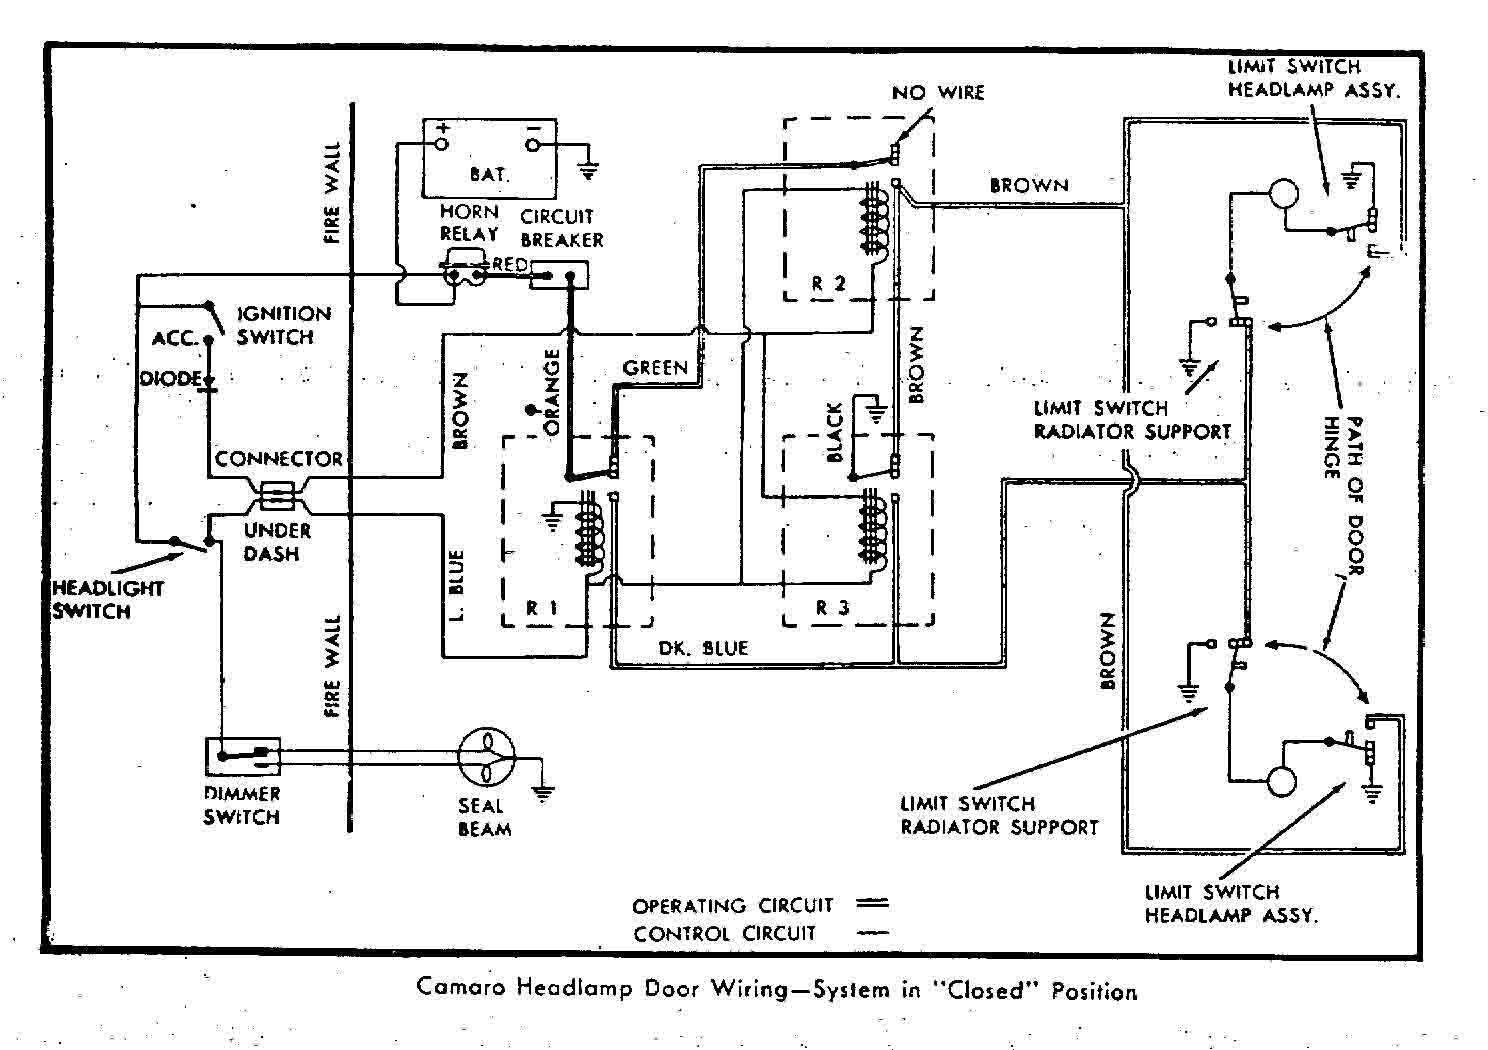 small resolution of 1968 camaro headlamp wiring diagram wiring diagram source 67 camaro tachometer wiring diagram 1967 camaro wiring